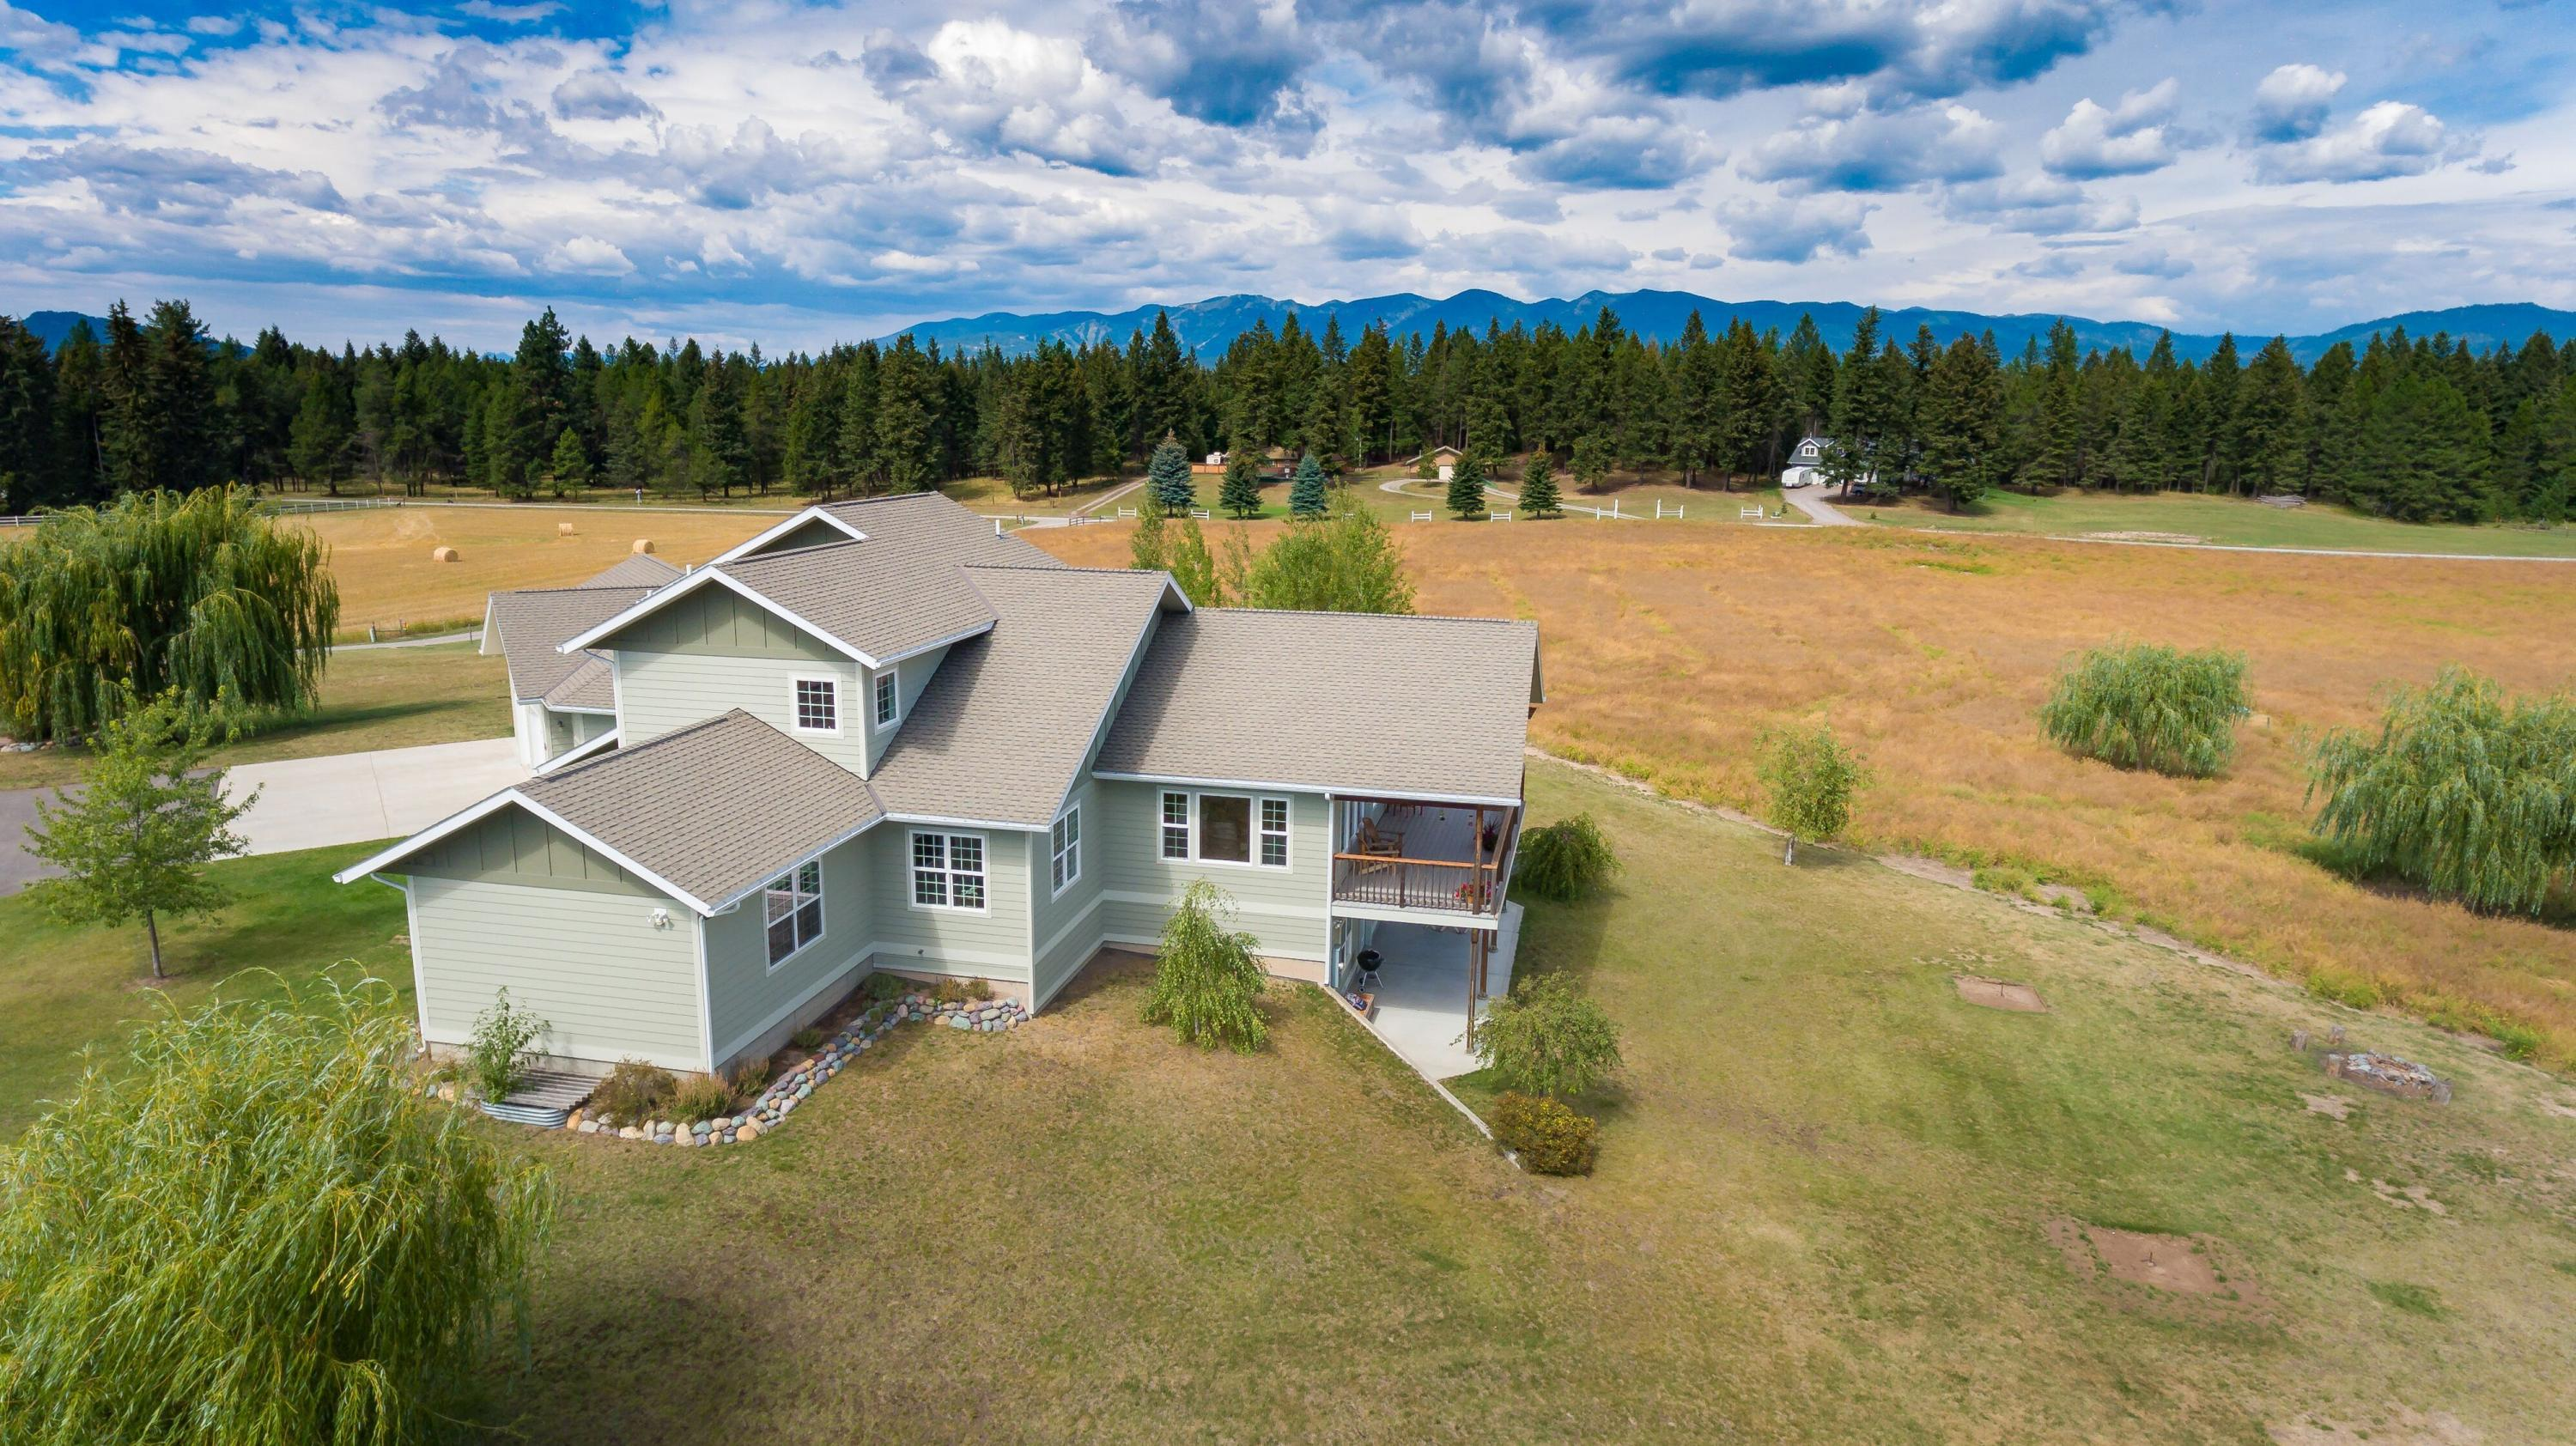 280 Barnes Lane, Columbia Falls, MT 59912, MLS # 21905882 | Berkshire  Hathaway HomeServices Montana Properties